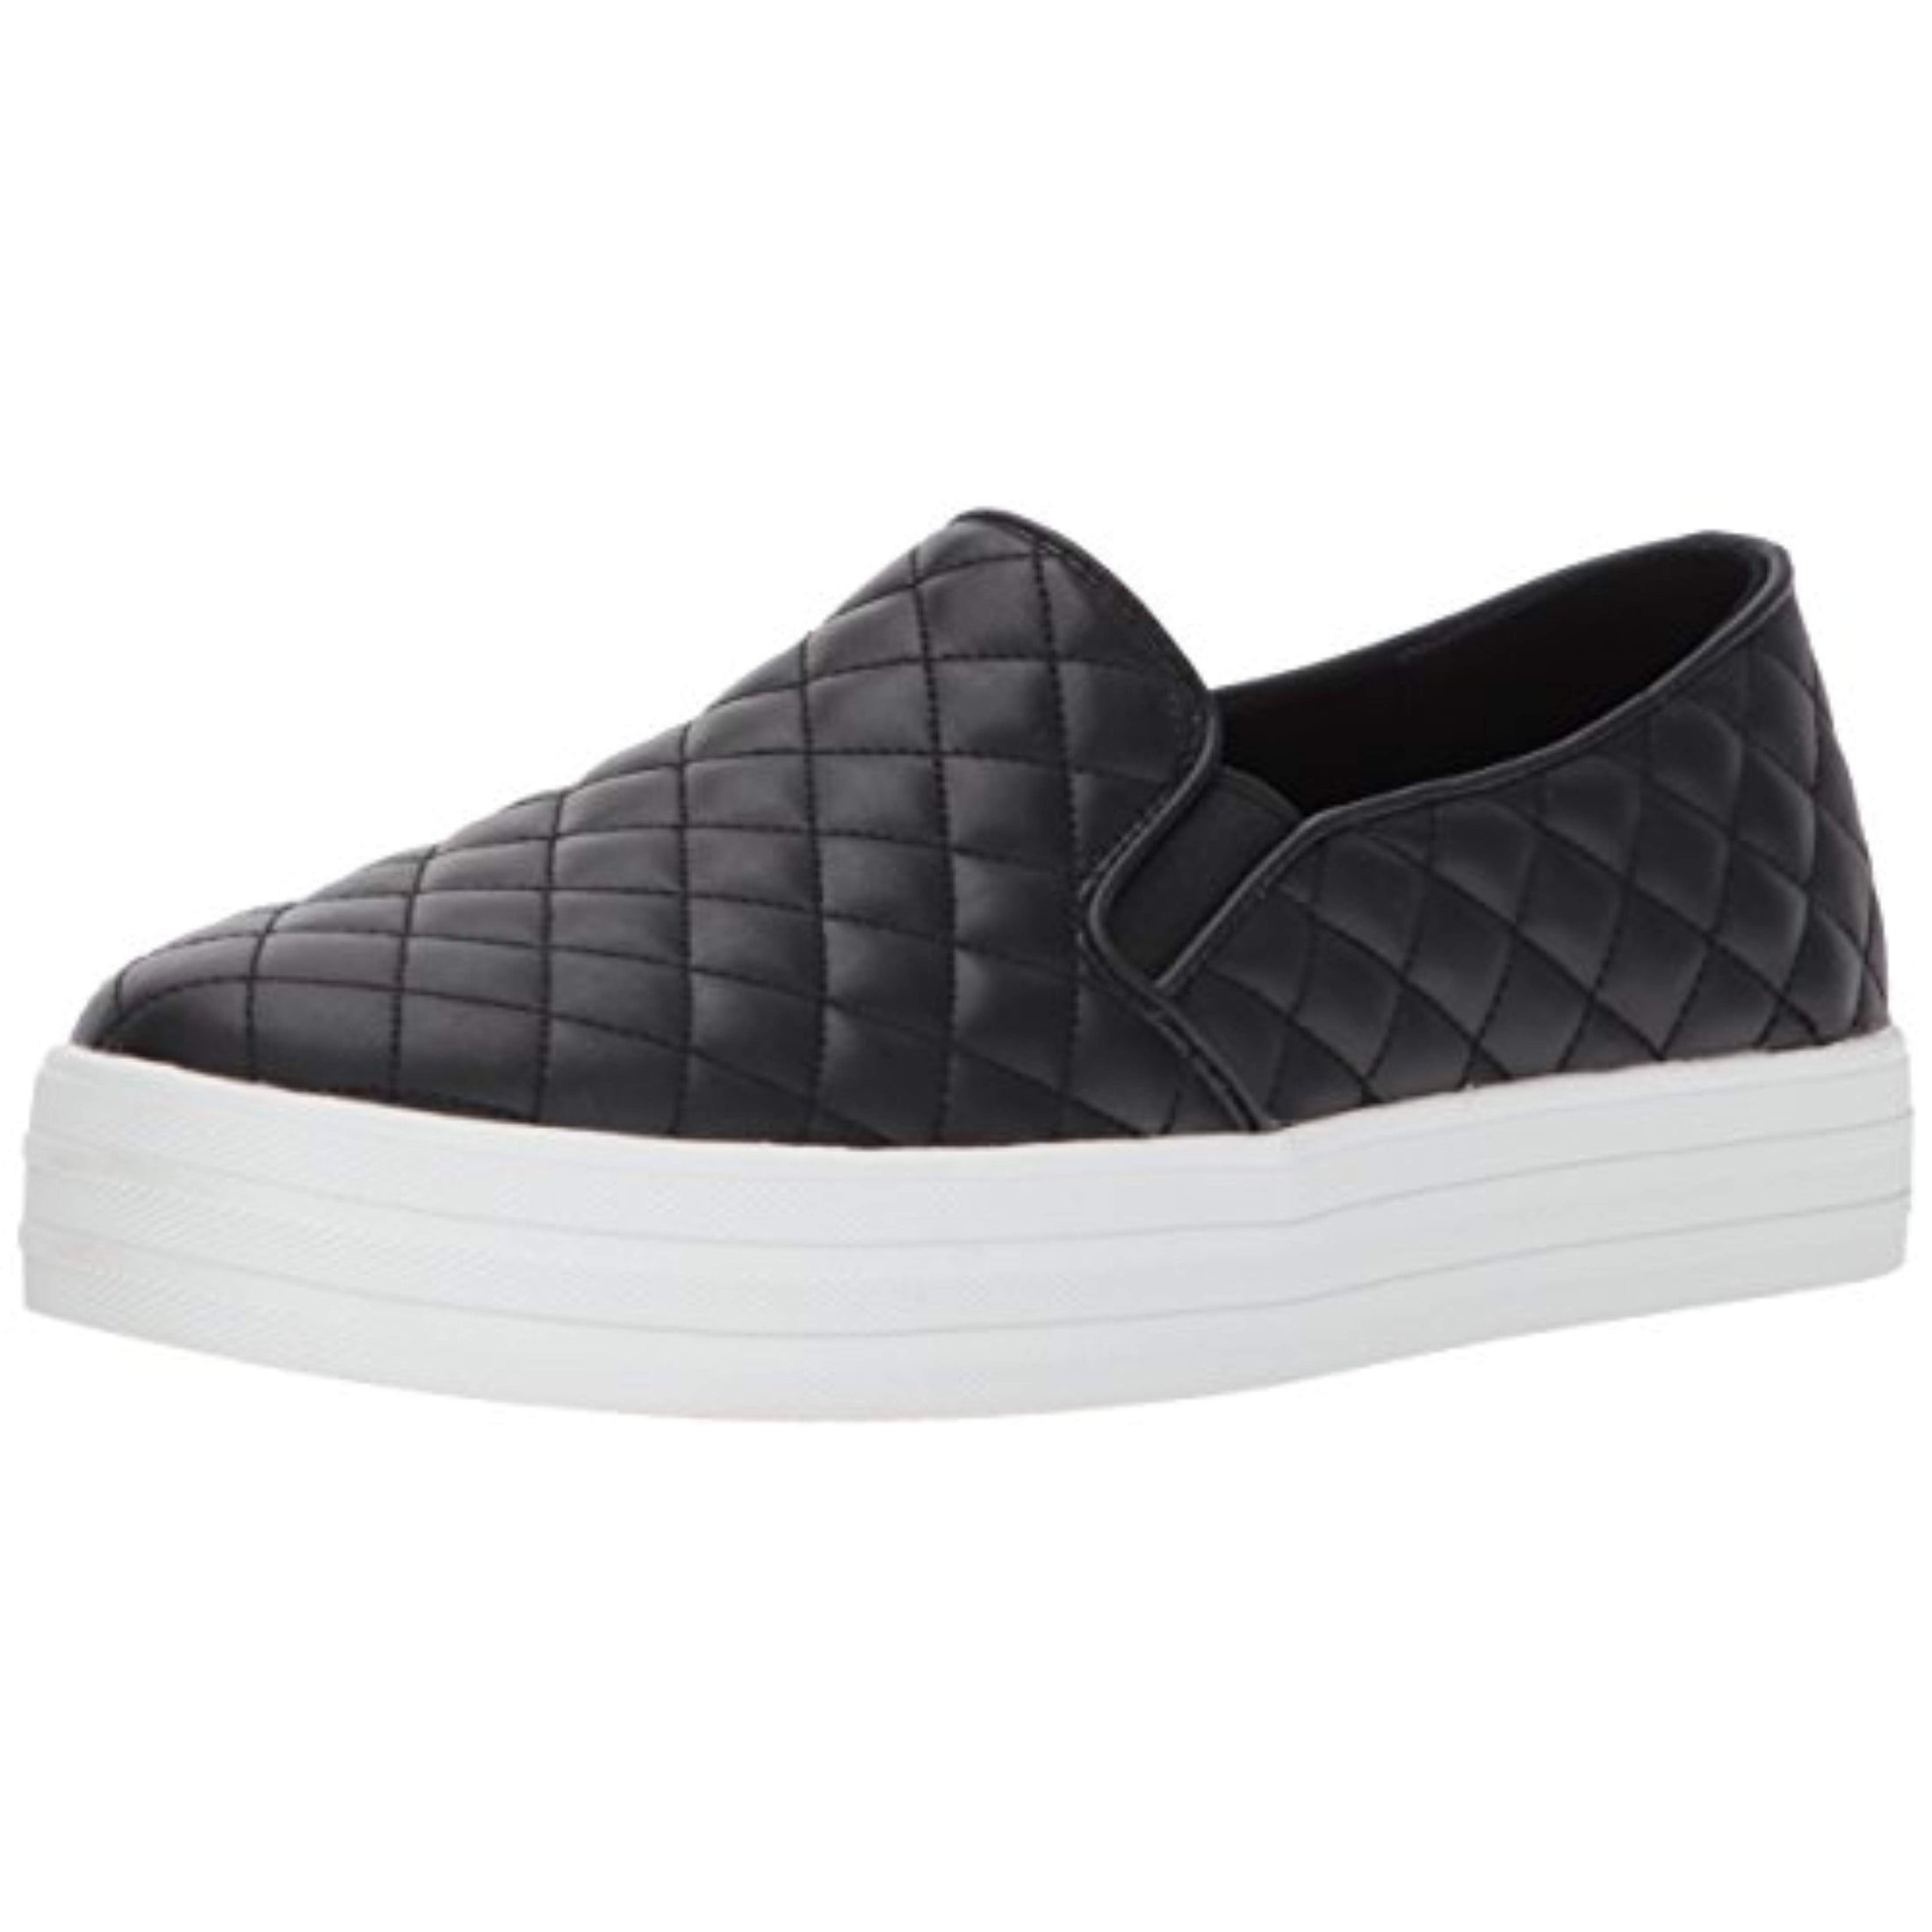 Skecher Street Women's Double Up Quilted Fashion Sneaker, Black